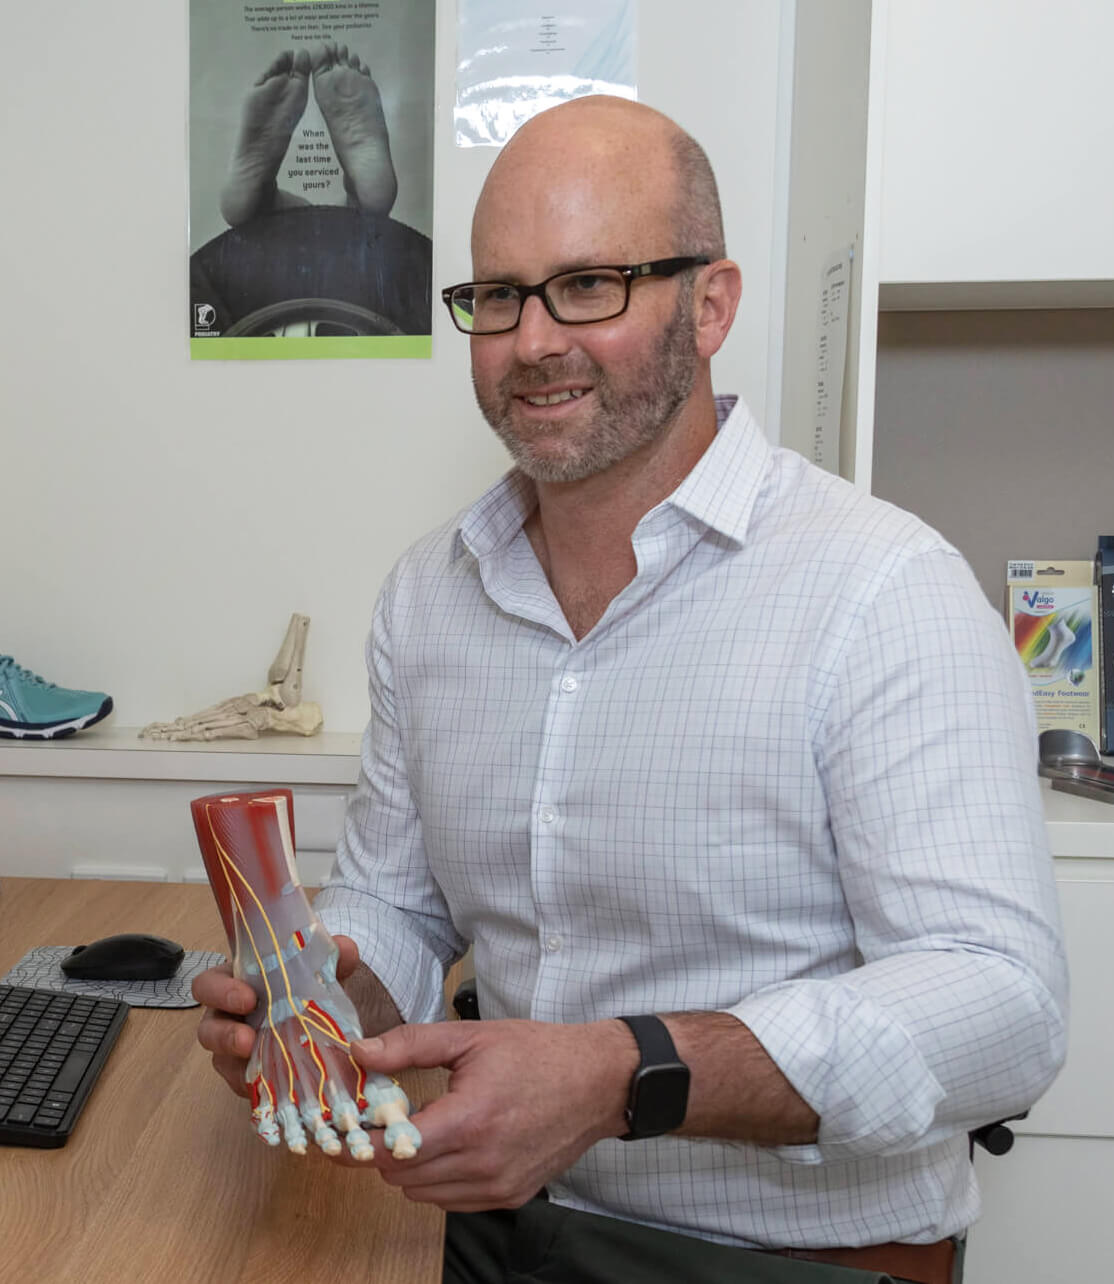 Treatment & Recovery Plans with Podiatry First Sports